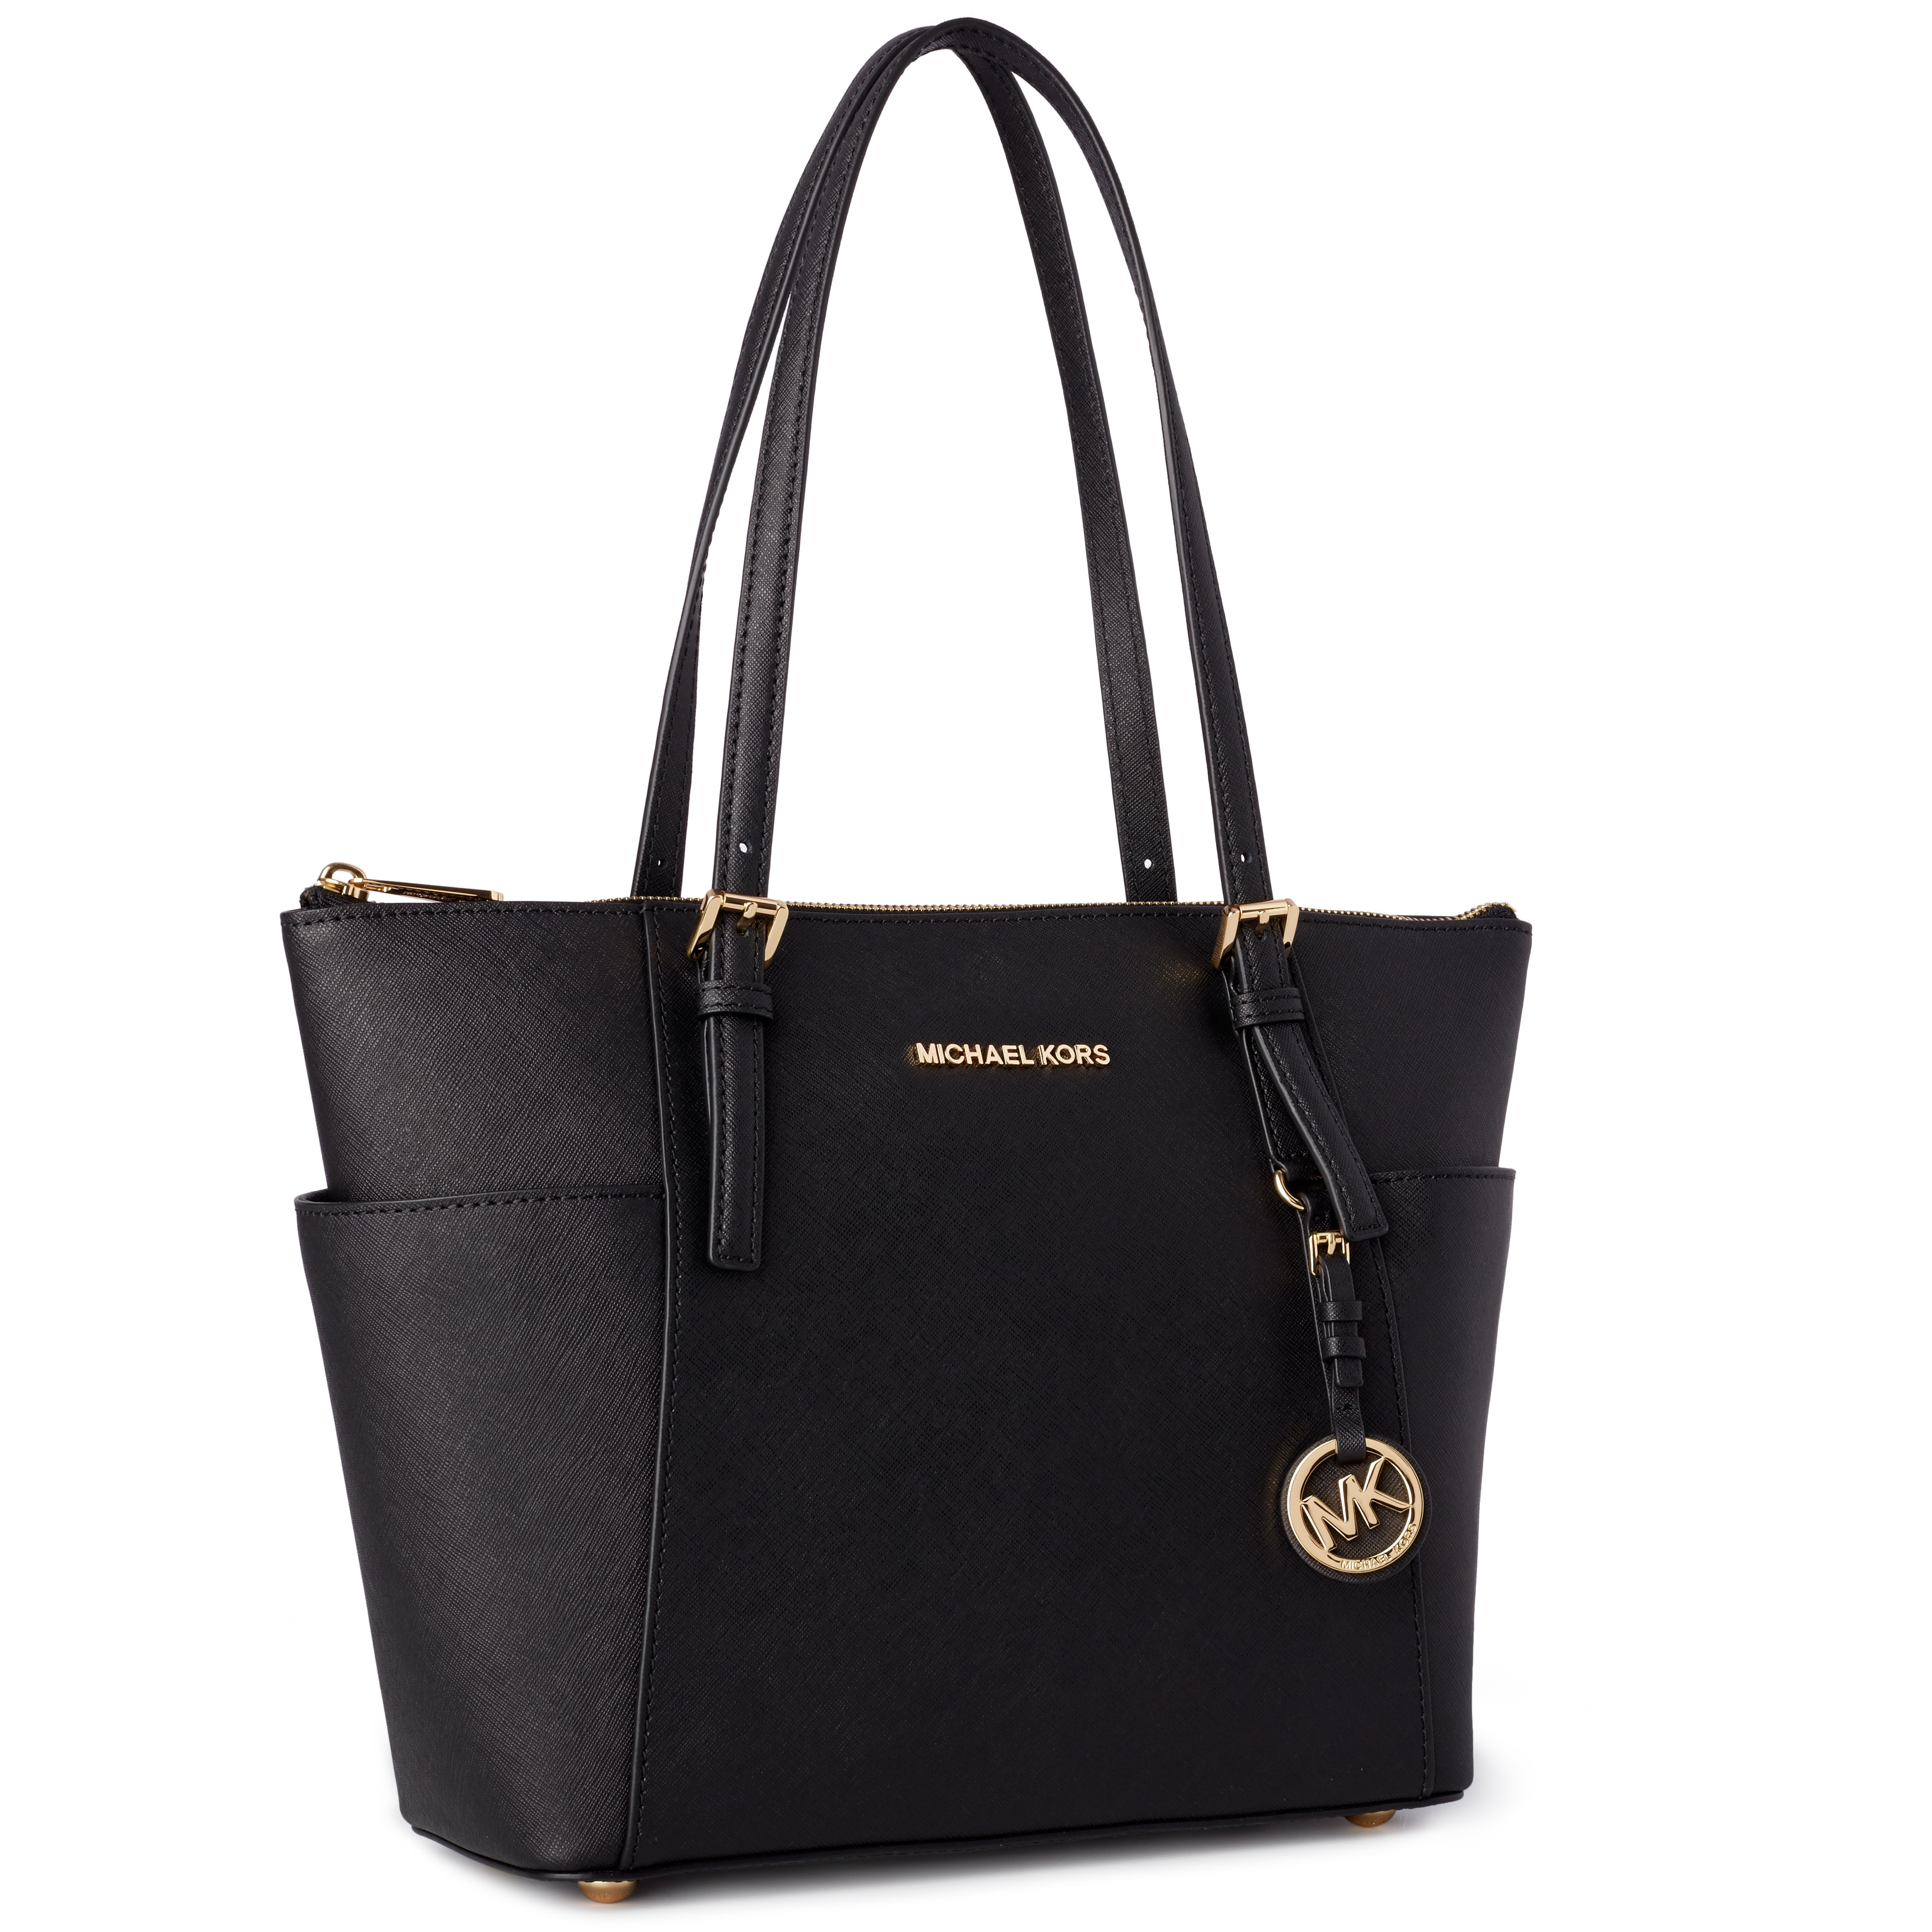 Shop Michael Kors Jet Set Medium Pocketed Top Zip Tote Bag - Free Shipping  Today - Overstock - 9167184 4bdb6ab1f233b